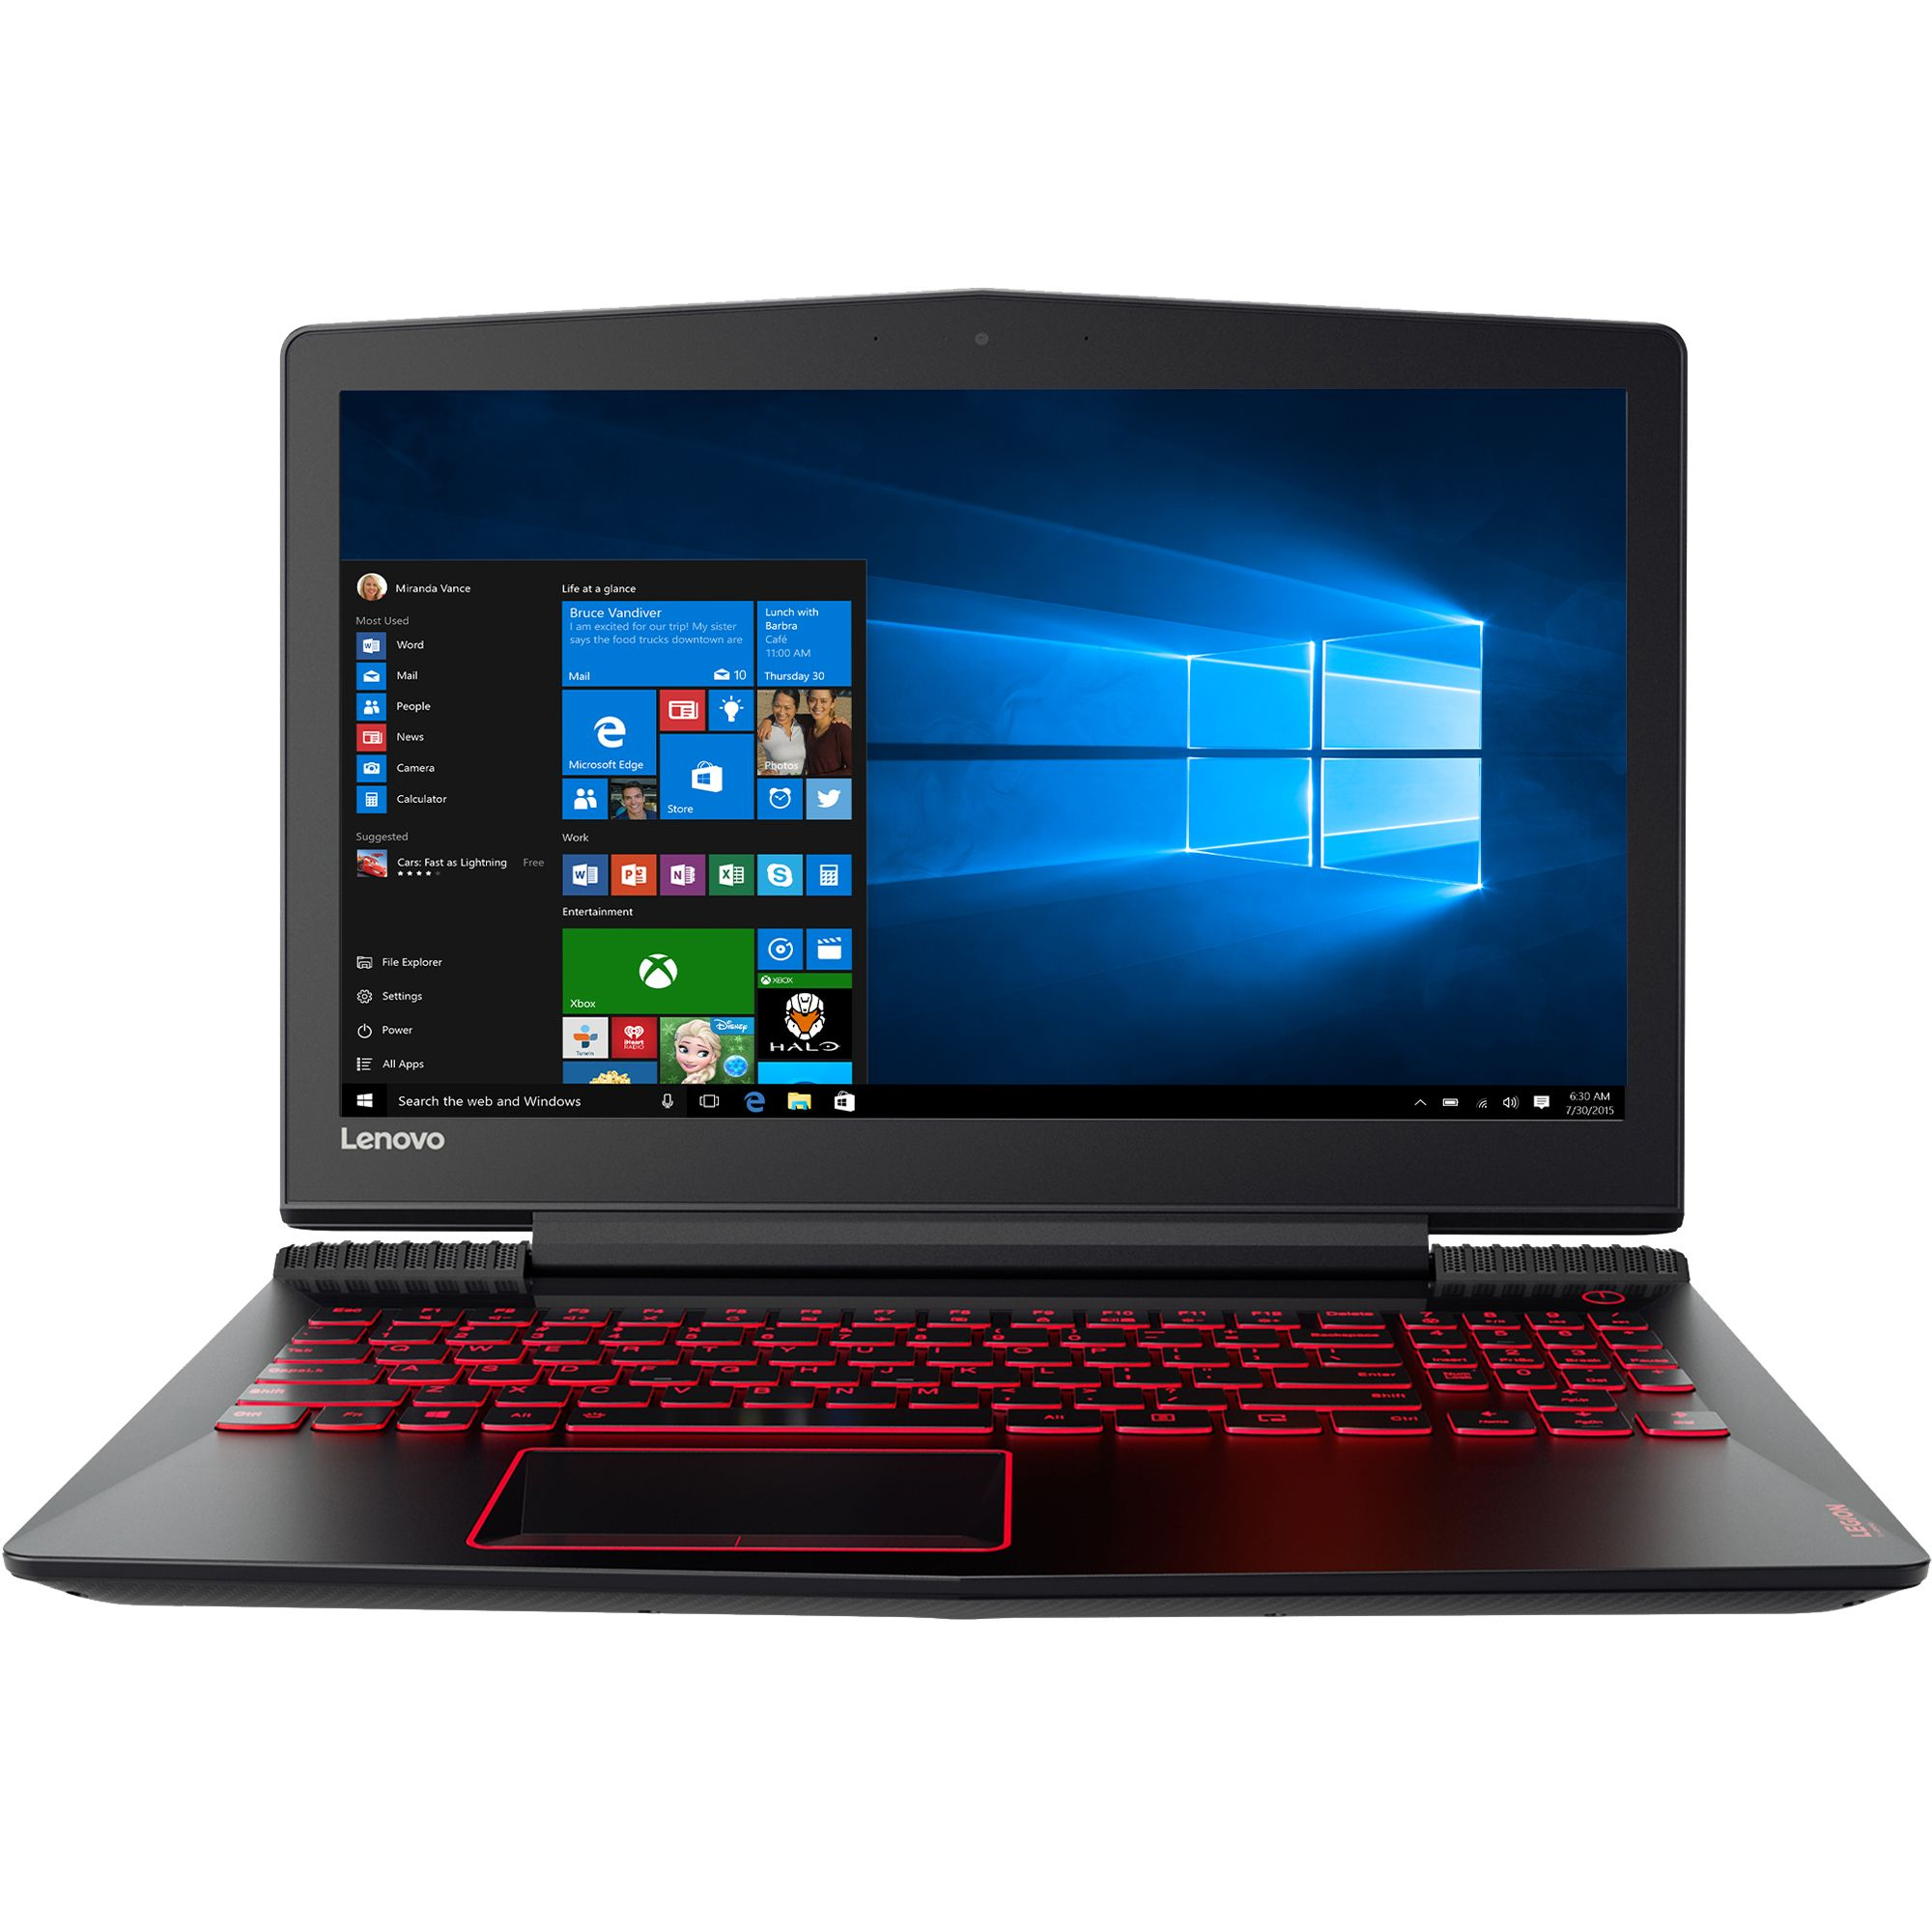 Notebook Lenovo Legion Y520 15.6 Full HD Intel Core i7-7700HQ GTX 1050-4GB RAM 8GB HDD 1TB FreeDOS